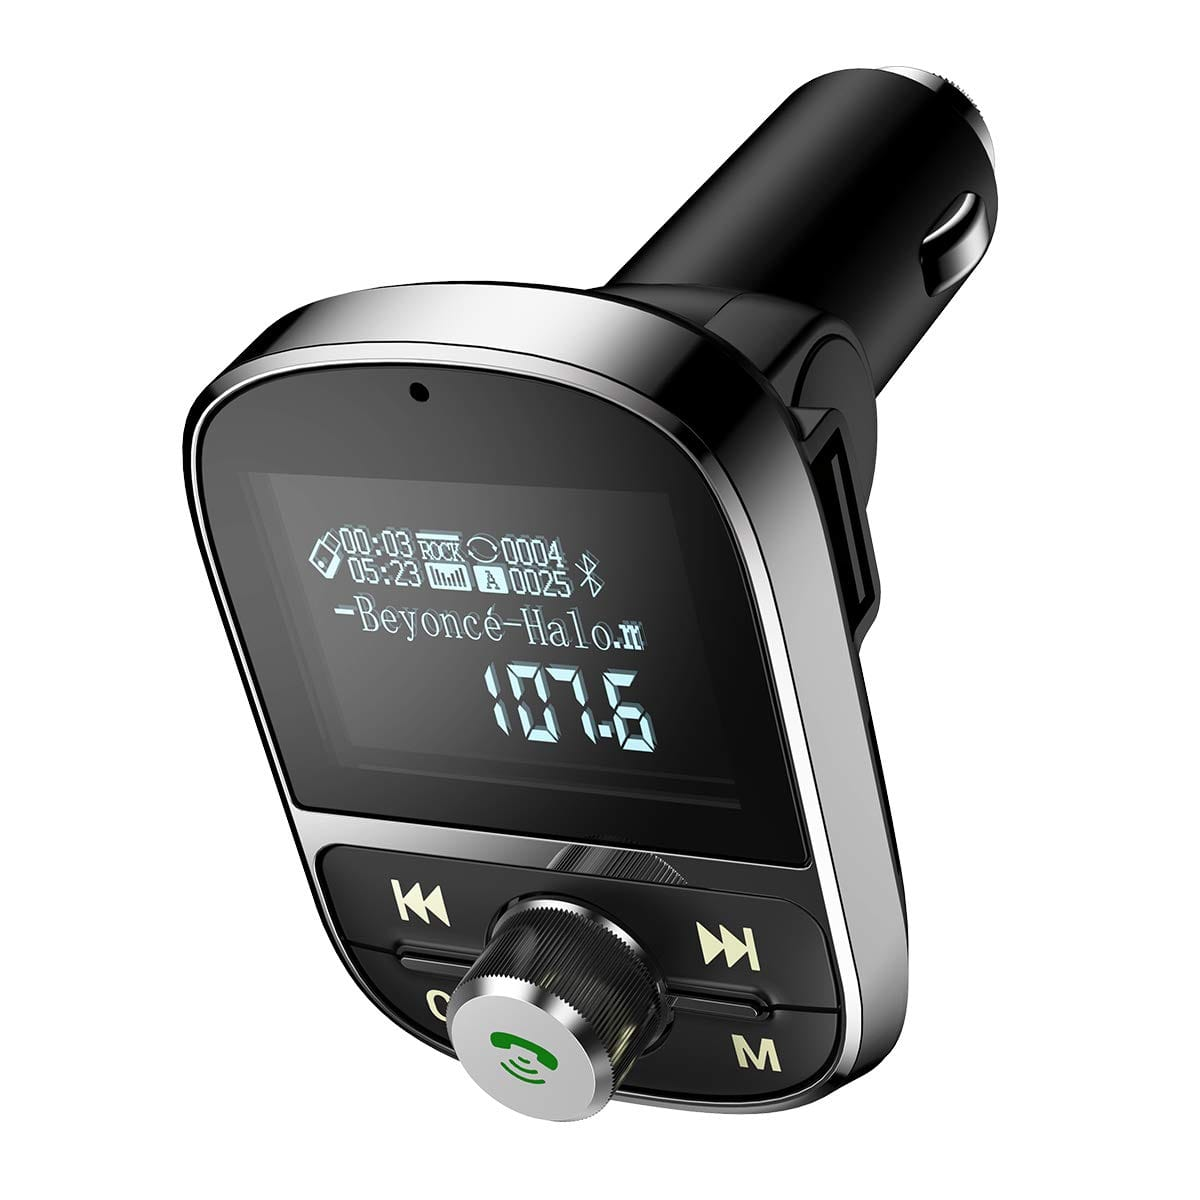 "Ainope 1.44"" LCD Display Wireless FM Transmitter $5.10 & more + FSSS"